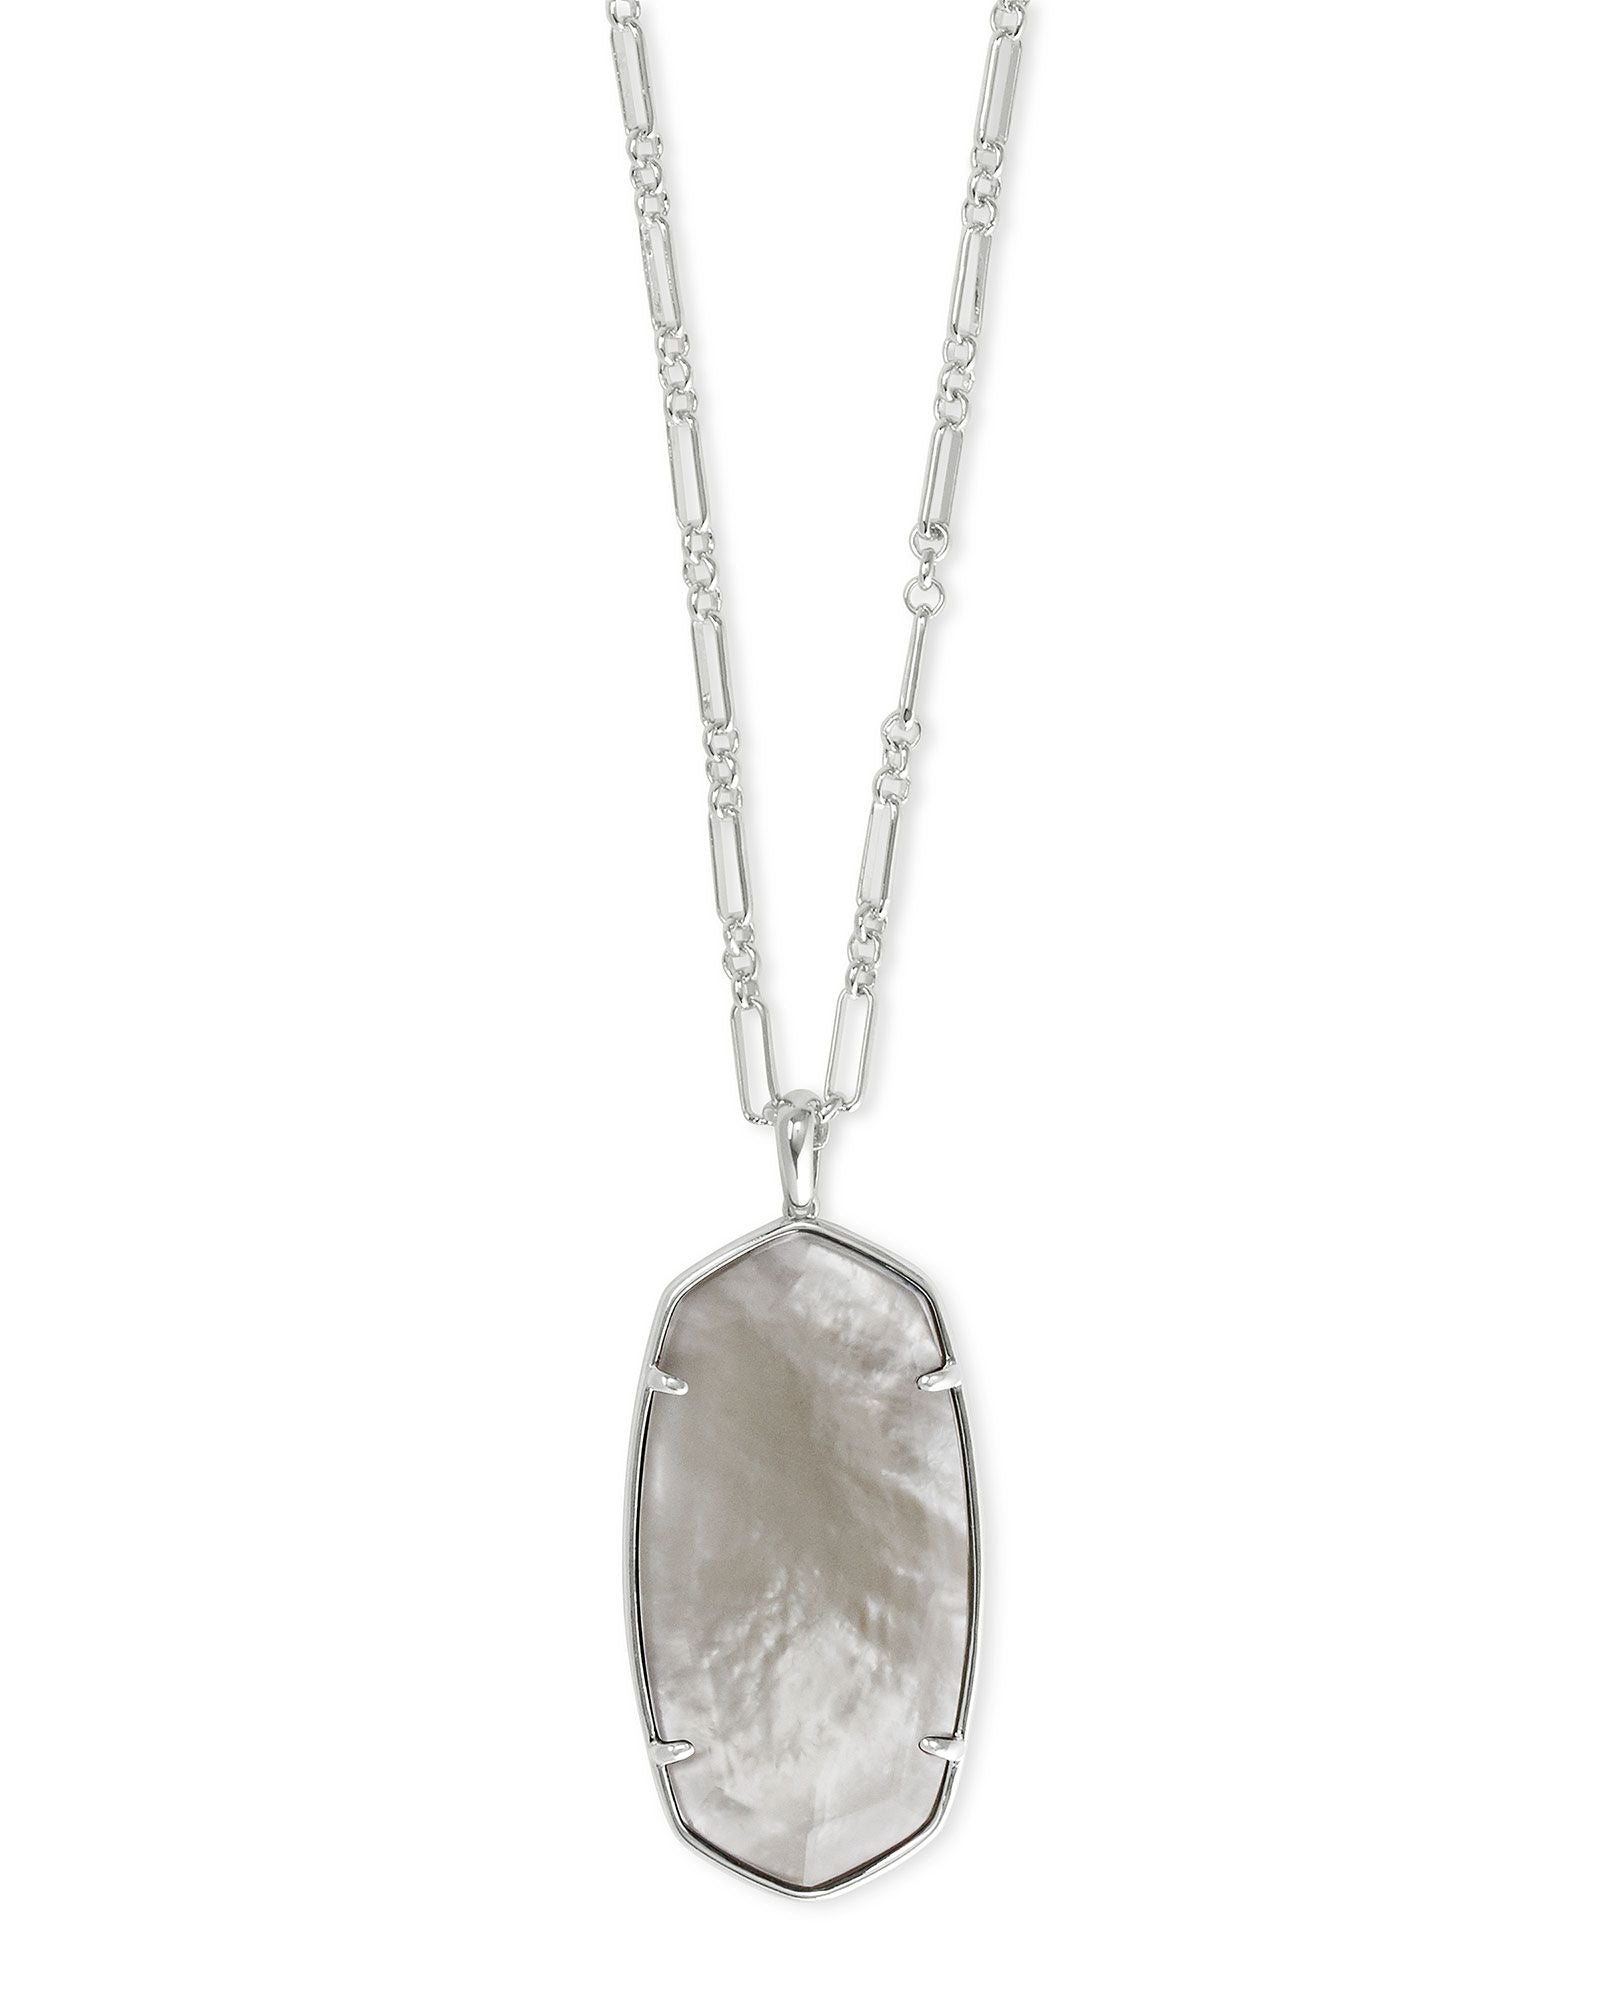 Faceted Reid Necklace Silver Gray Illusion